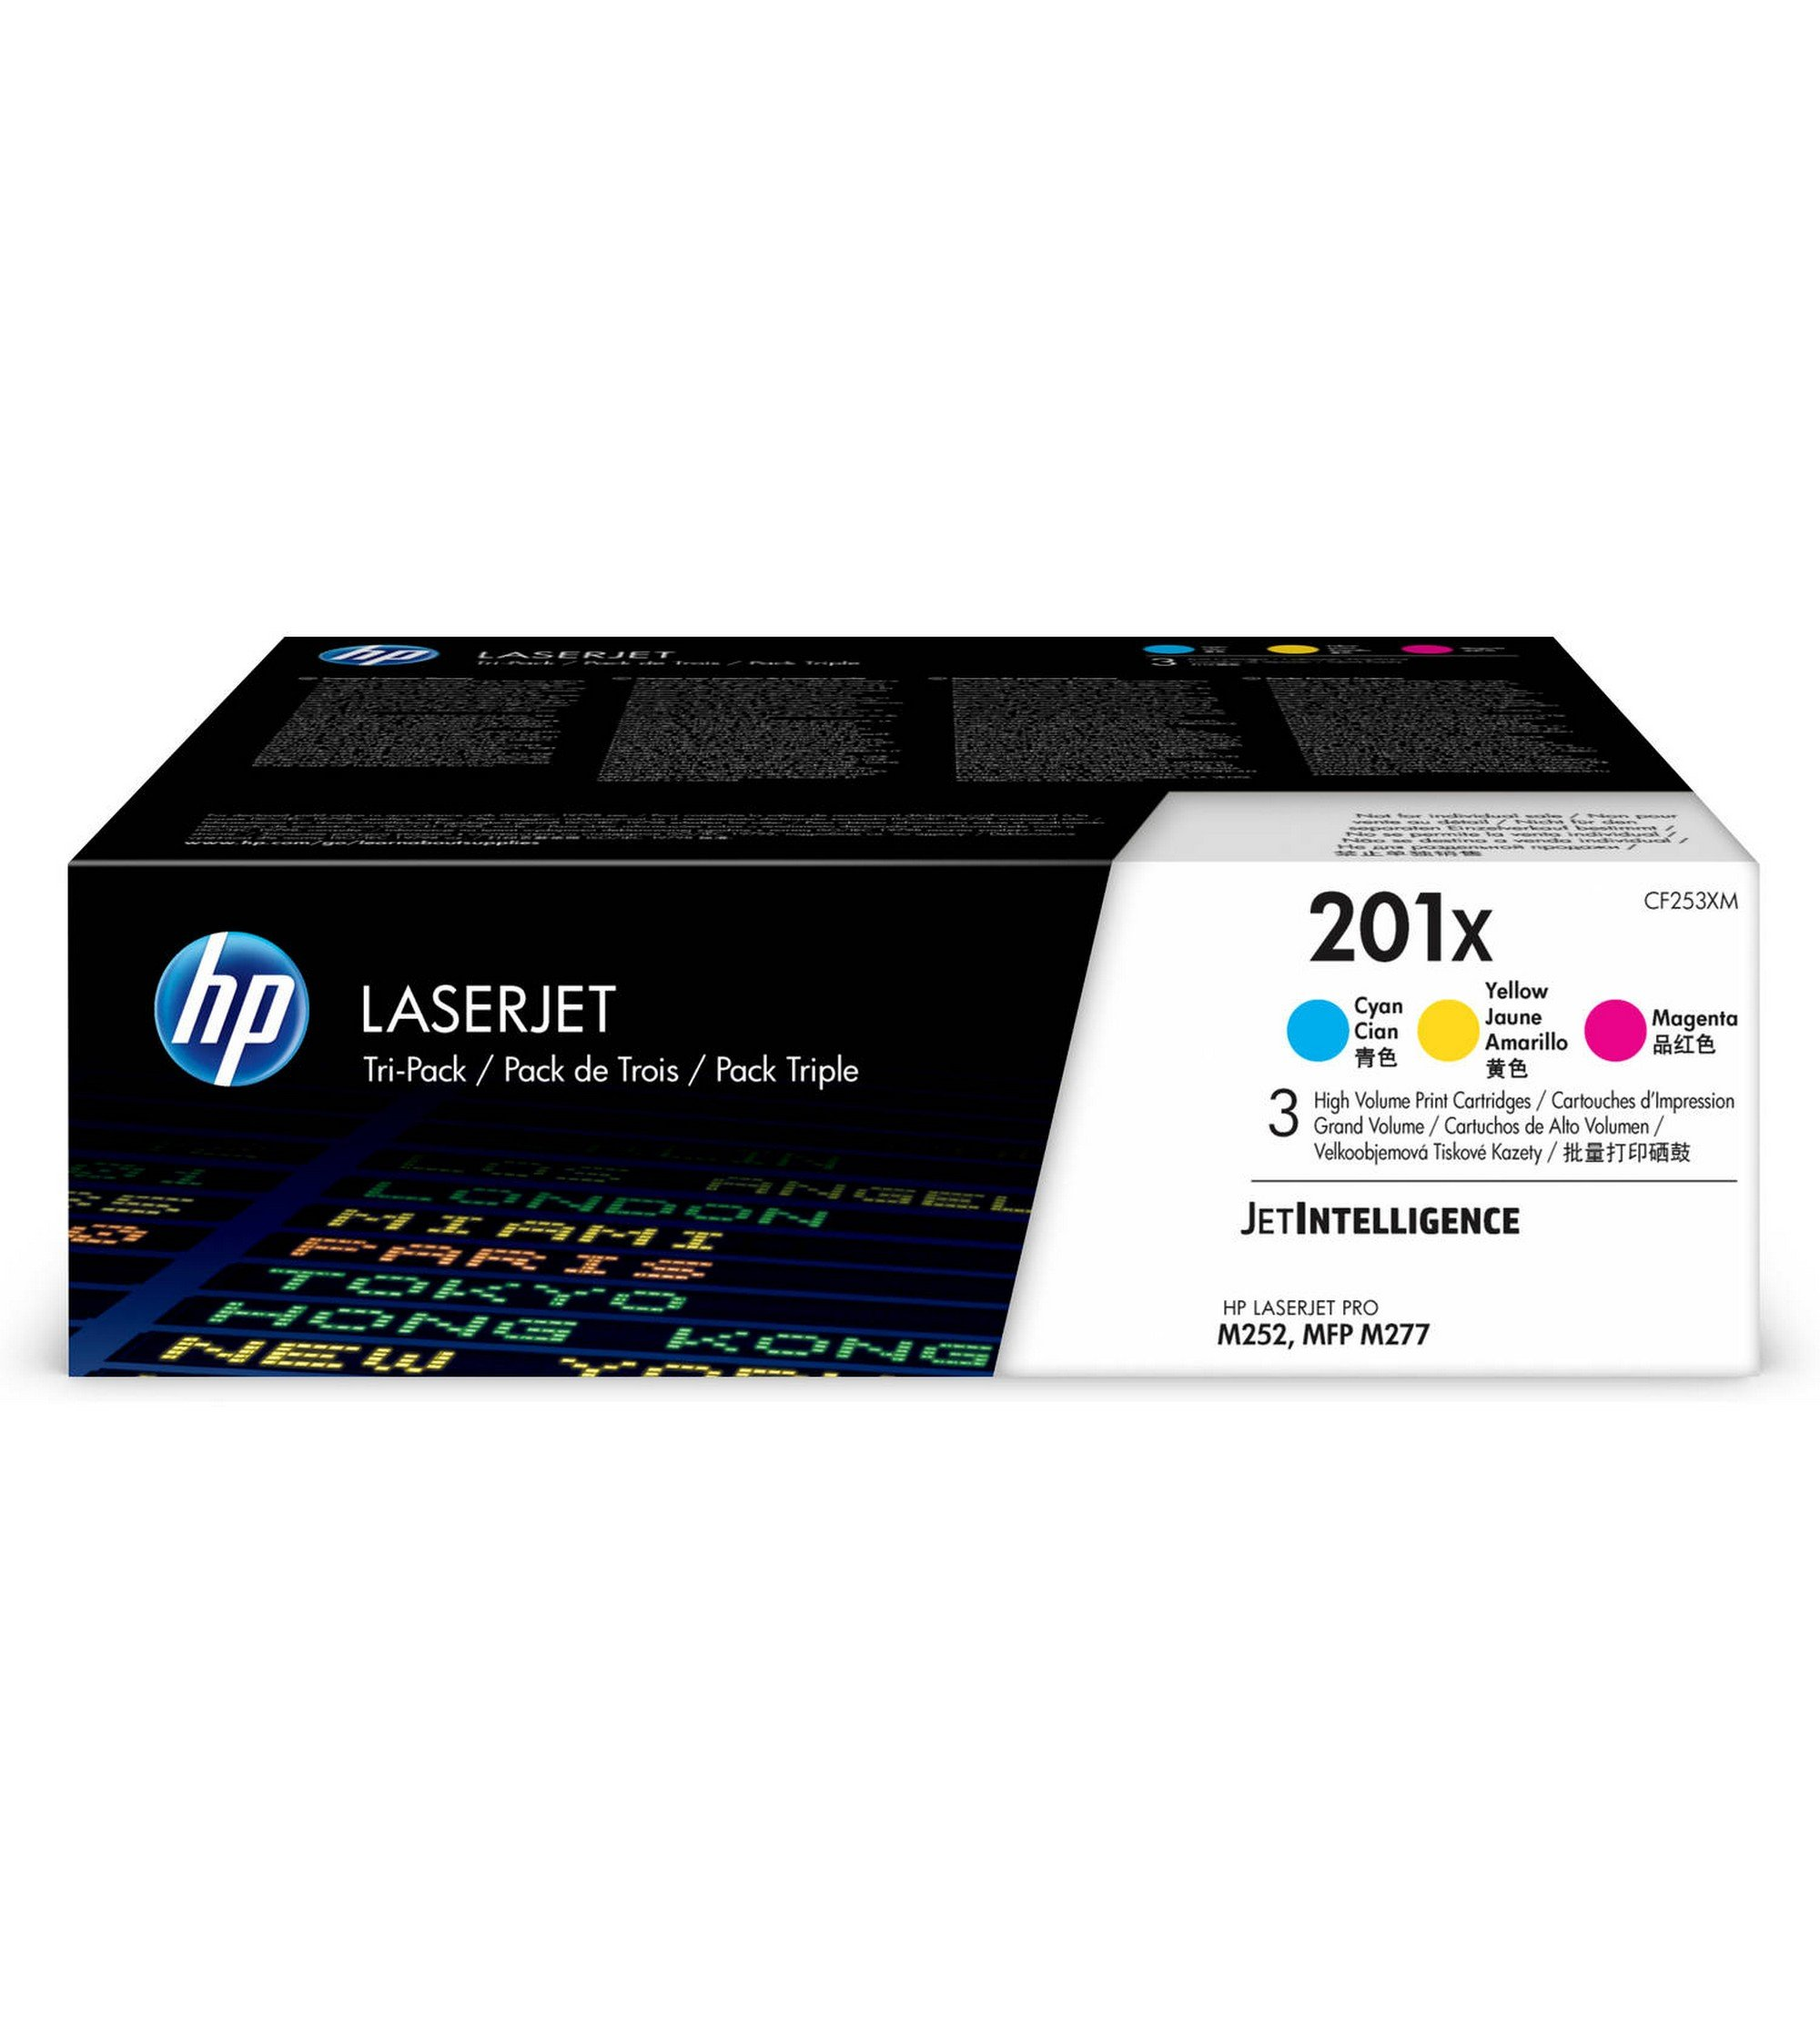 HP CF253XM  201X Toner Cartridge Cyan, Yellow & Magenta High Yield, 3 Toner Cartridges (CF401X,CF402X, CF403X) for  Color LaserJet Pro M252dw, M277, M277c6, M277dw